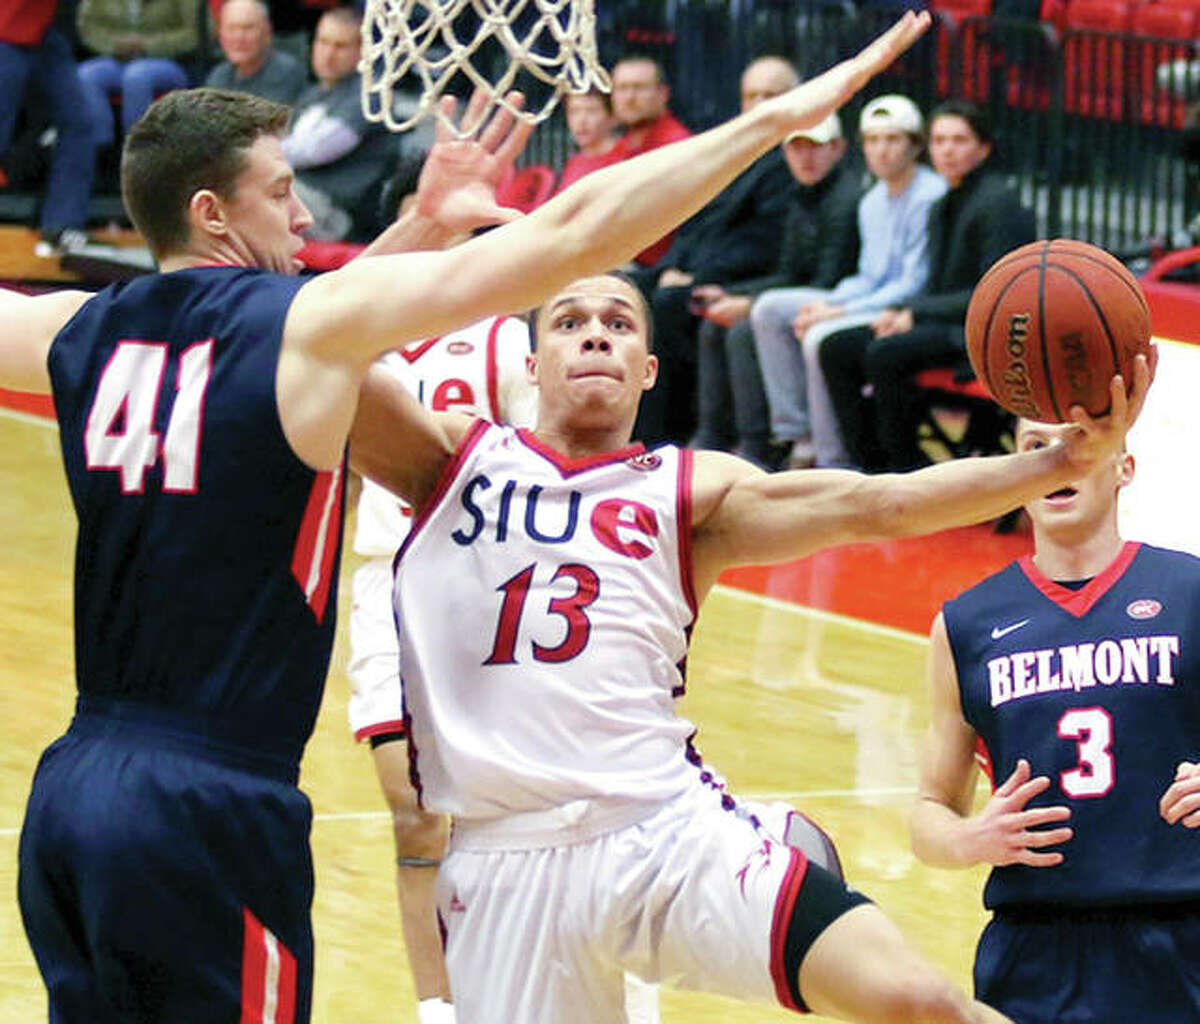 SIUE's Christian Ellis (13) drives against Tyler Hadden of Belmont in Thursday night's game at the Vadalabene Center. Ellis scored seven points, but SIUE lost 76-61.